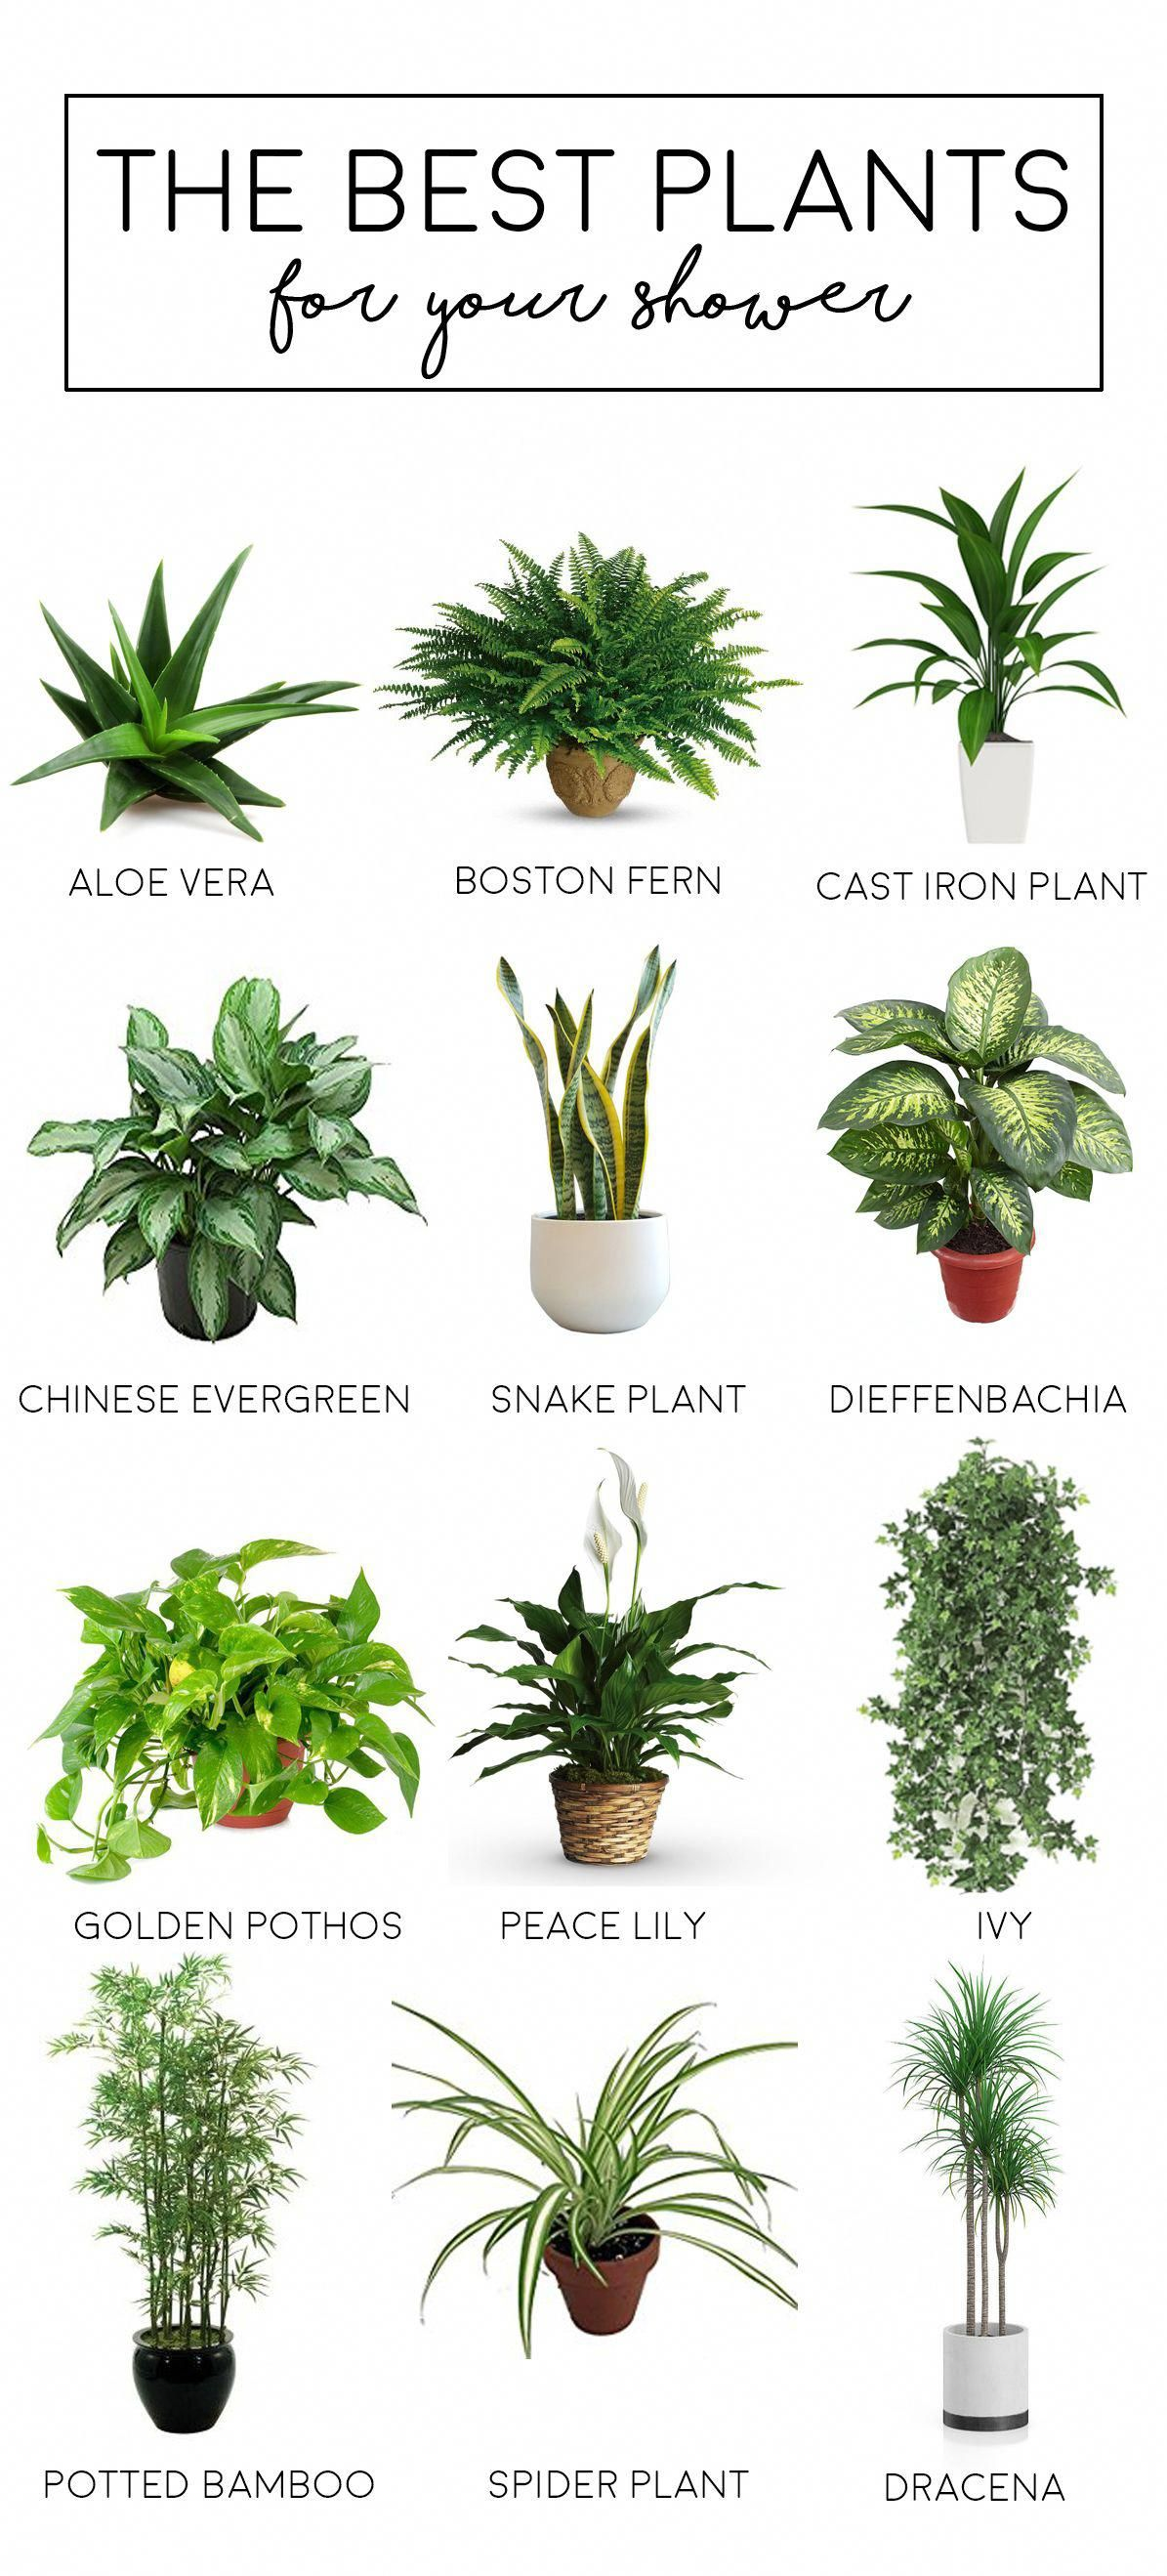 Best Plants To Have Bathroom Or Shower Gardendesign Best Bathroom Plants Plants Bathroom Plants